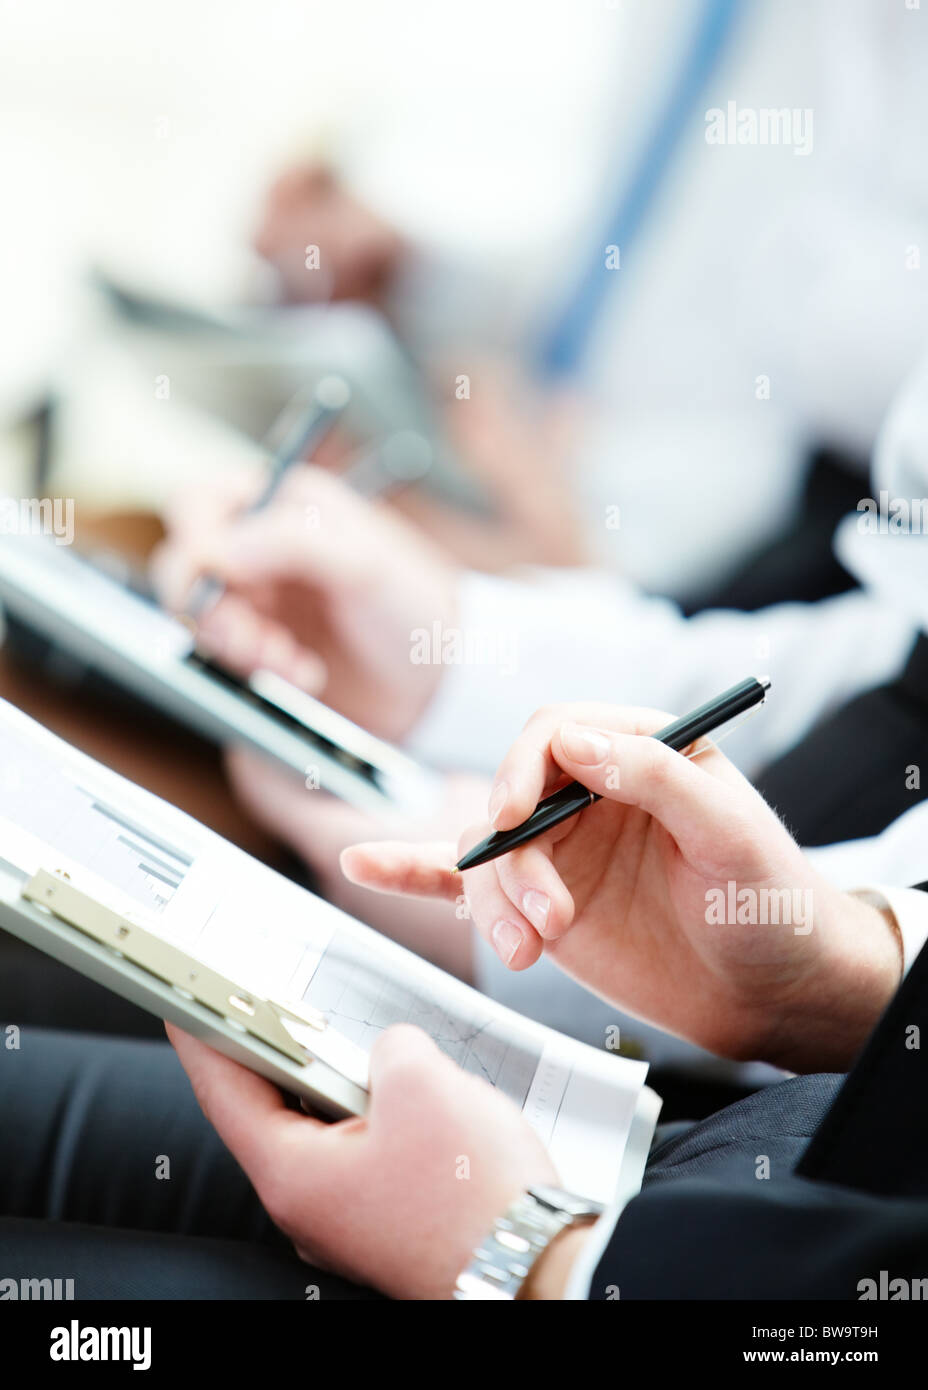 Business person hand with pen pointing at document during lecture - Stock Image